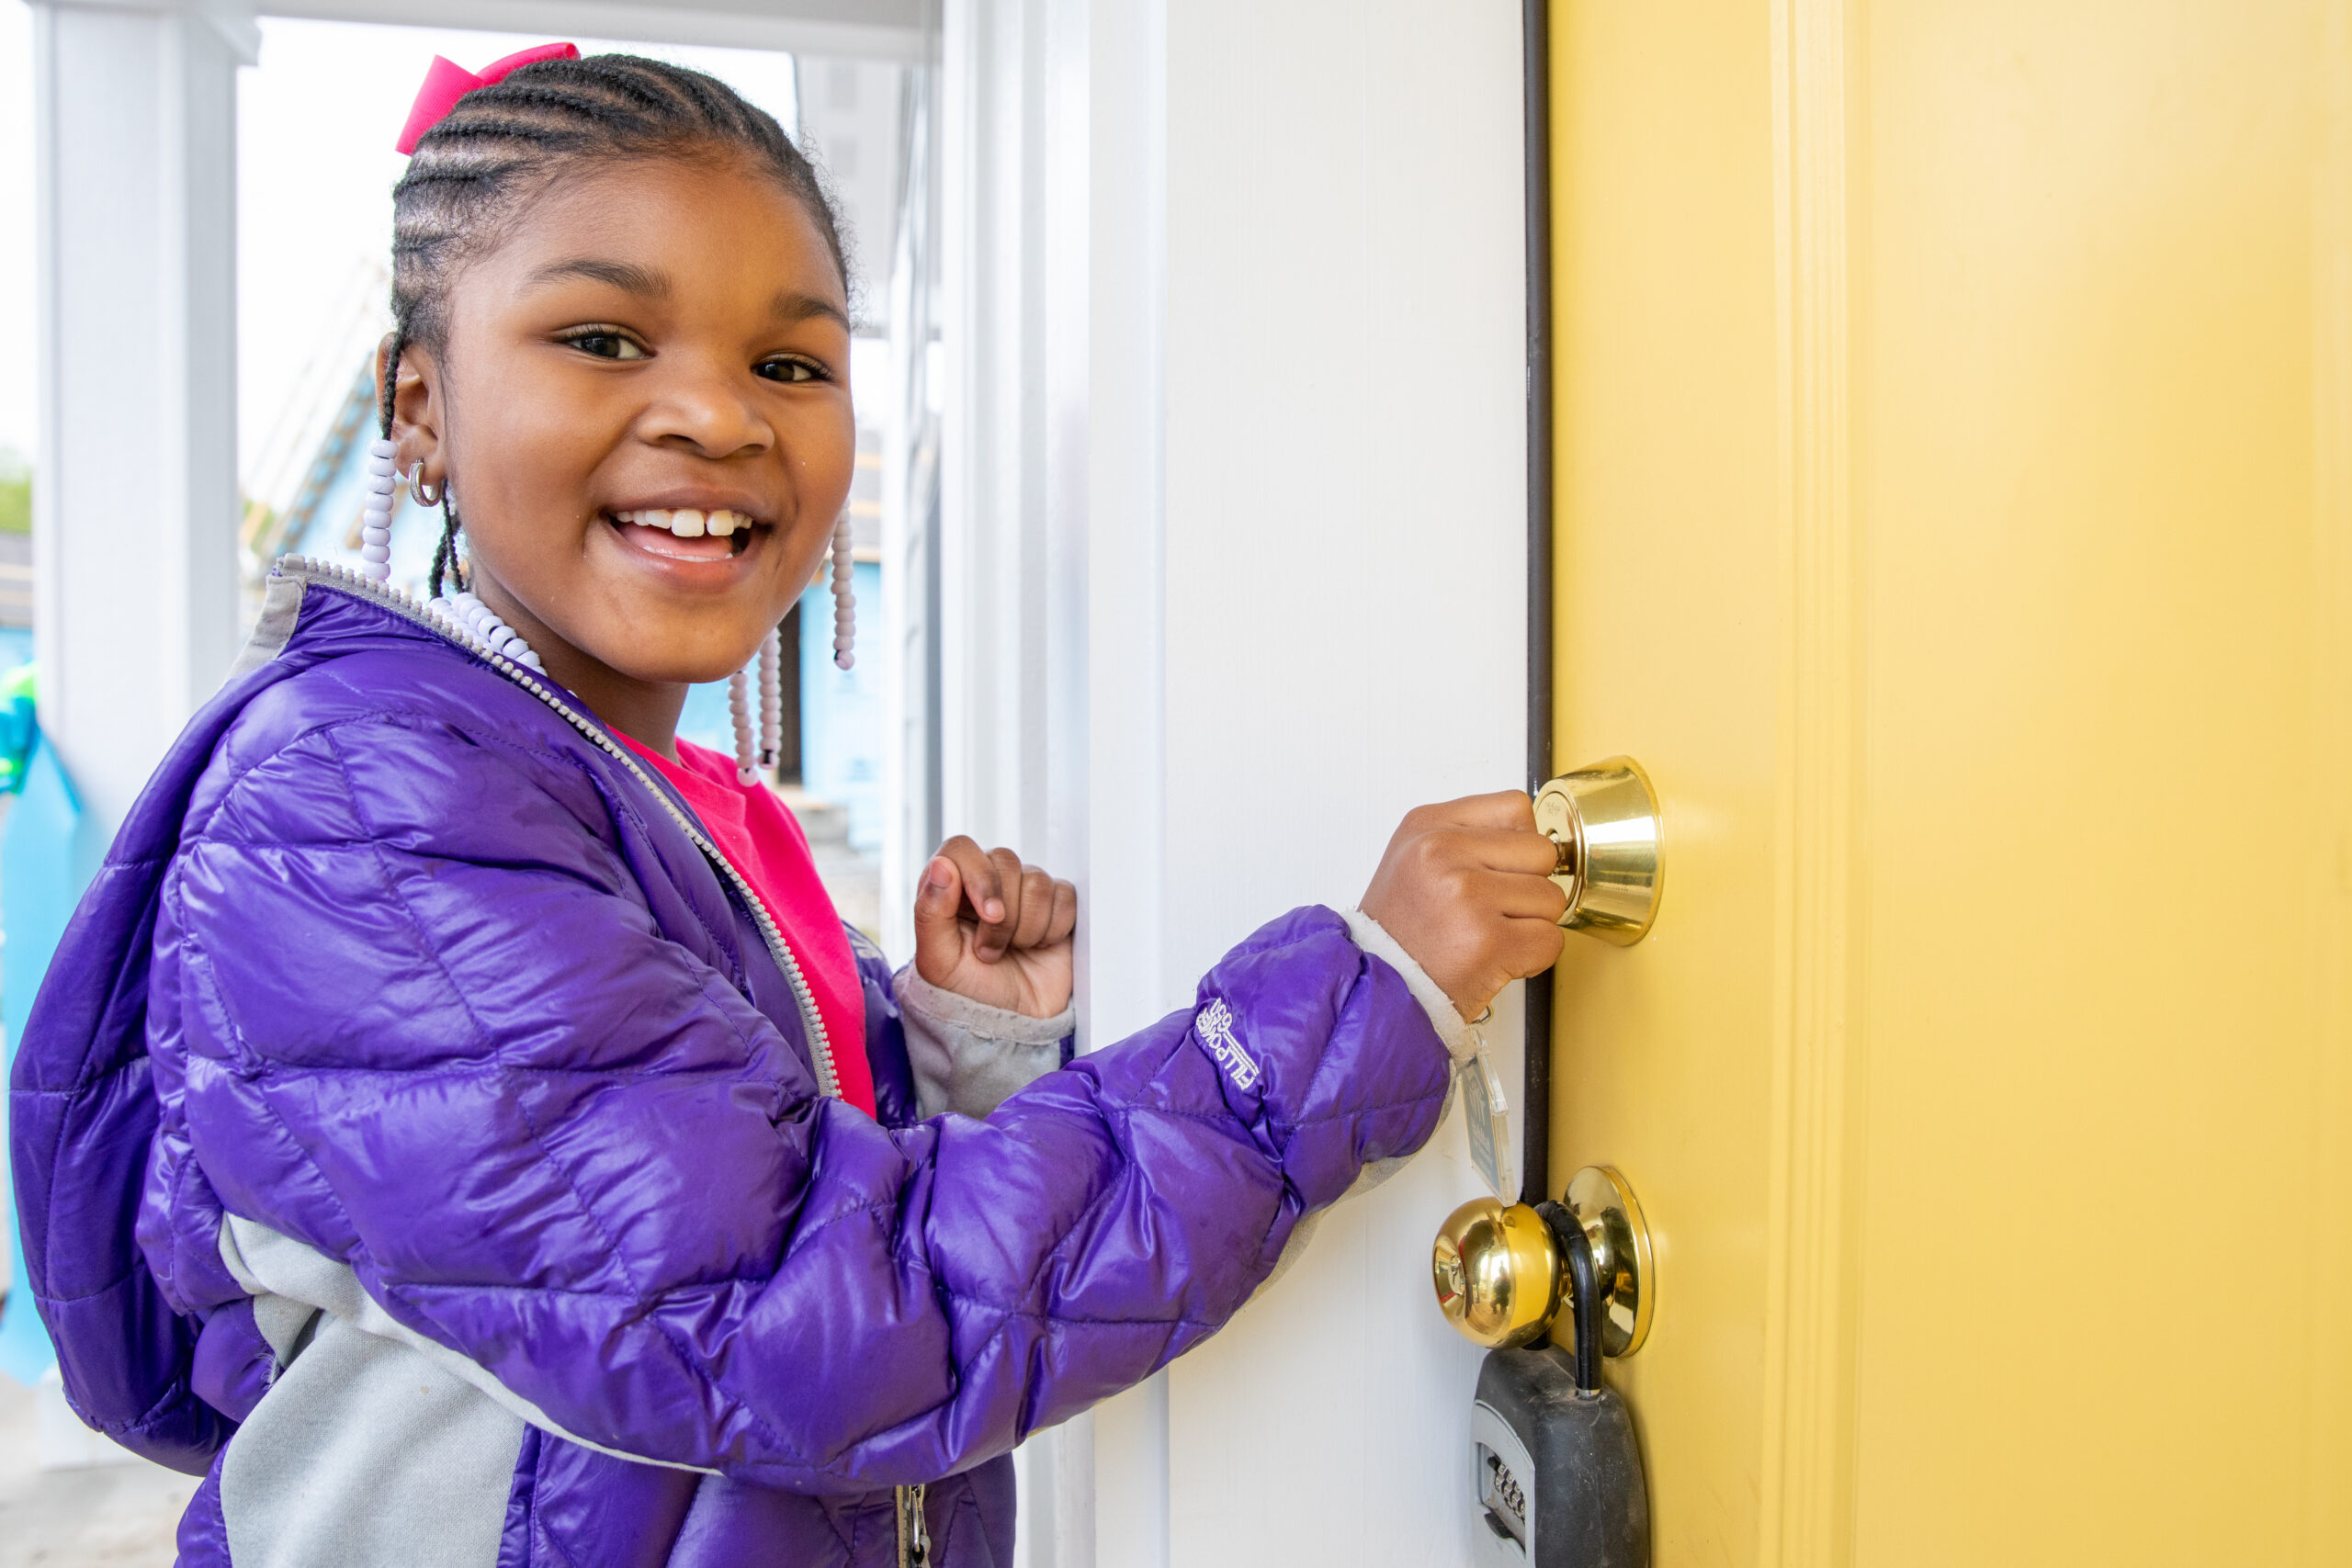 NASHVILLE, TENNESSEE (04/26/18)- Cyniah Osborne, 6, tours her future home during Habitat for Humanity's Home is the Key dedication ceremony in Nashville. © Habitat for Humanity International/Jason Asteros